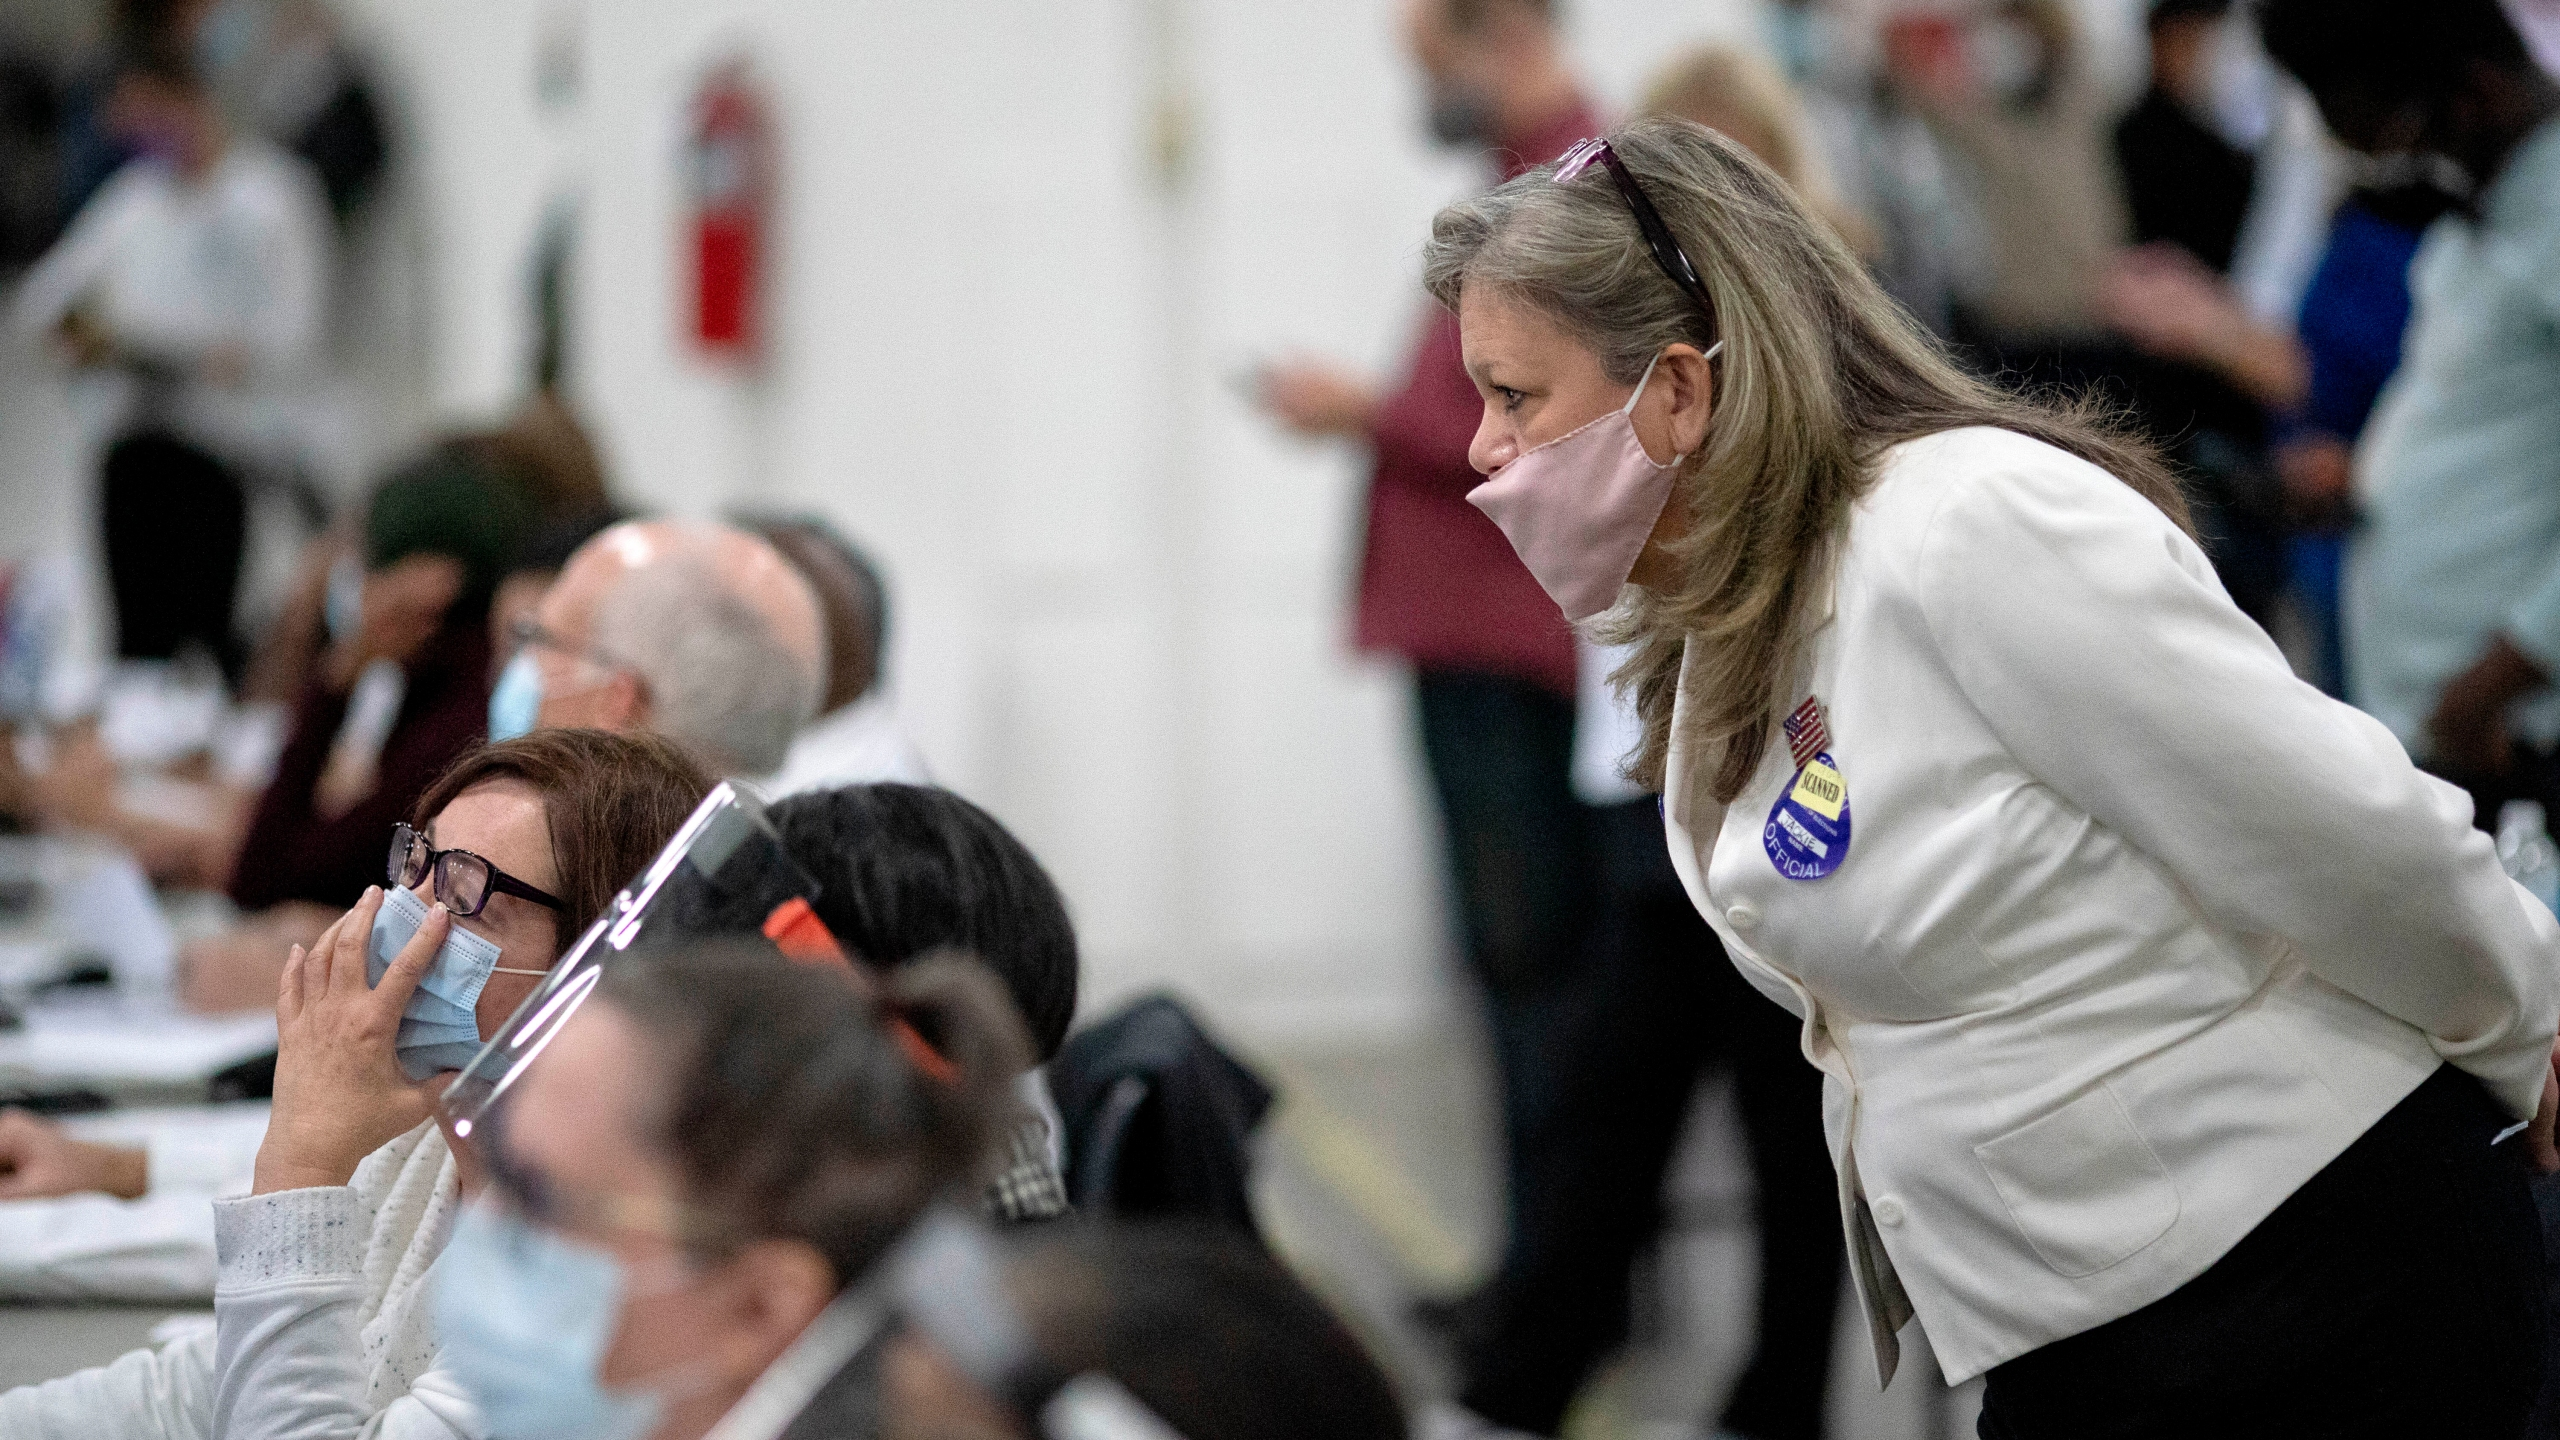 In this Nov. 4, 2020, file photo, a Republican election challenger at right watches over election inspectors as they examine a ballot as votes are counted into the early morning hours at the central counting board in Detroit. (AP Photo/David Goldman, File)